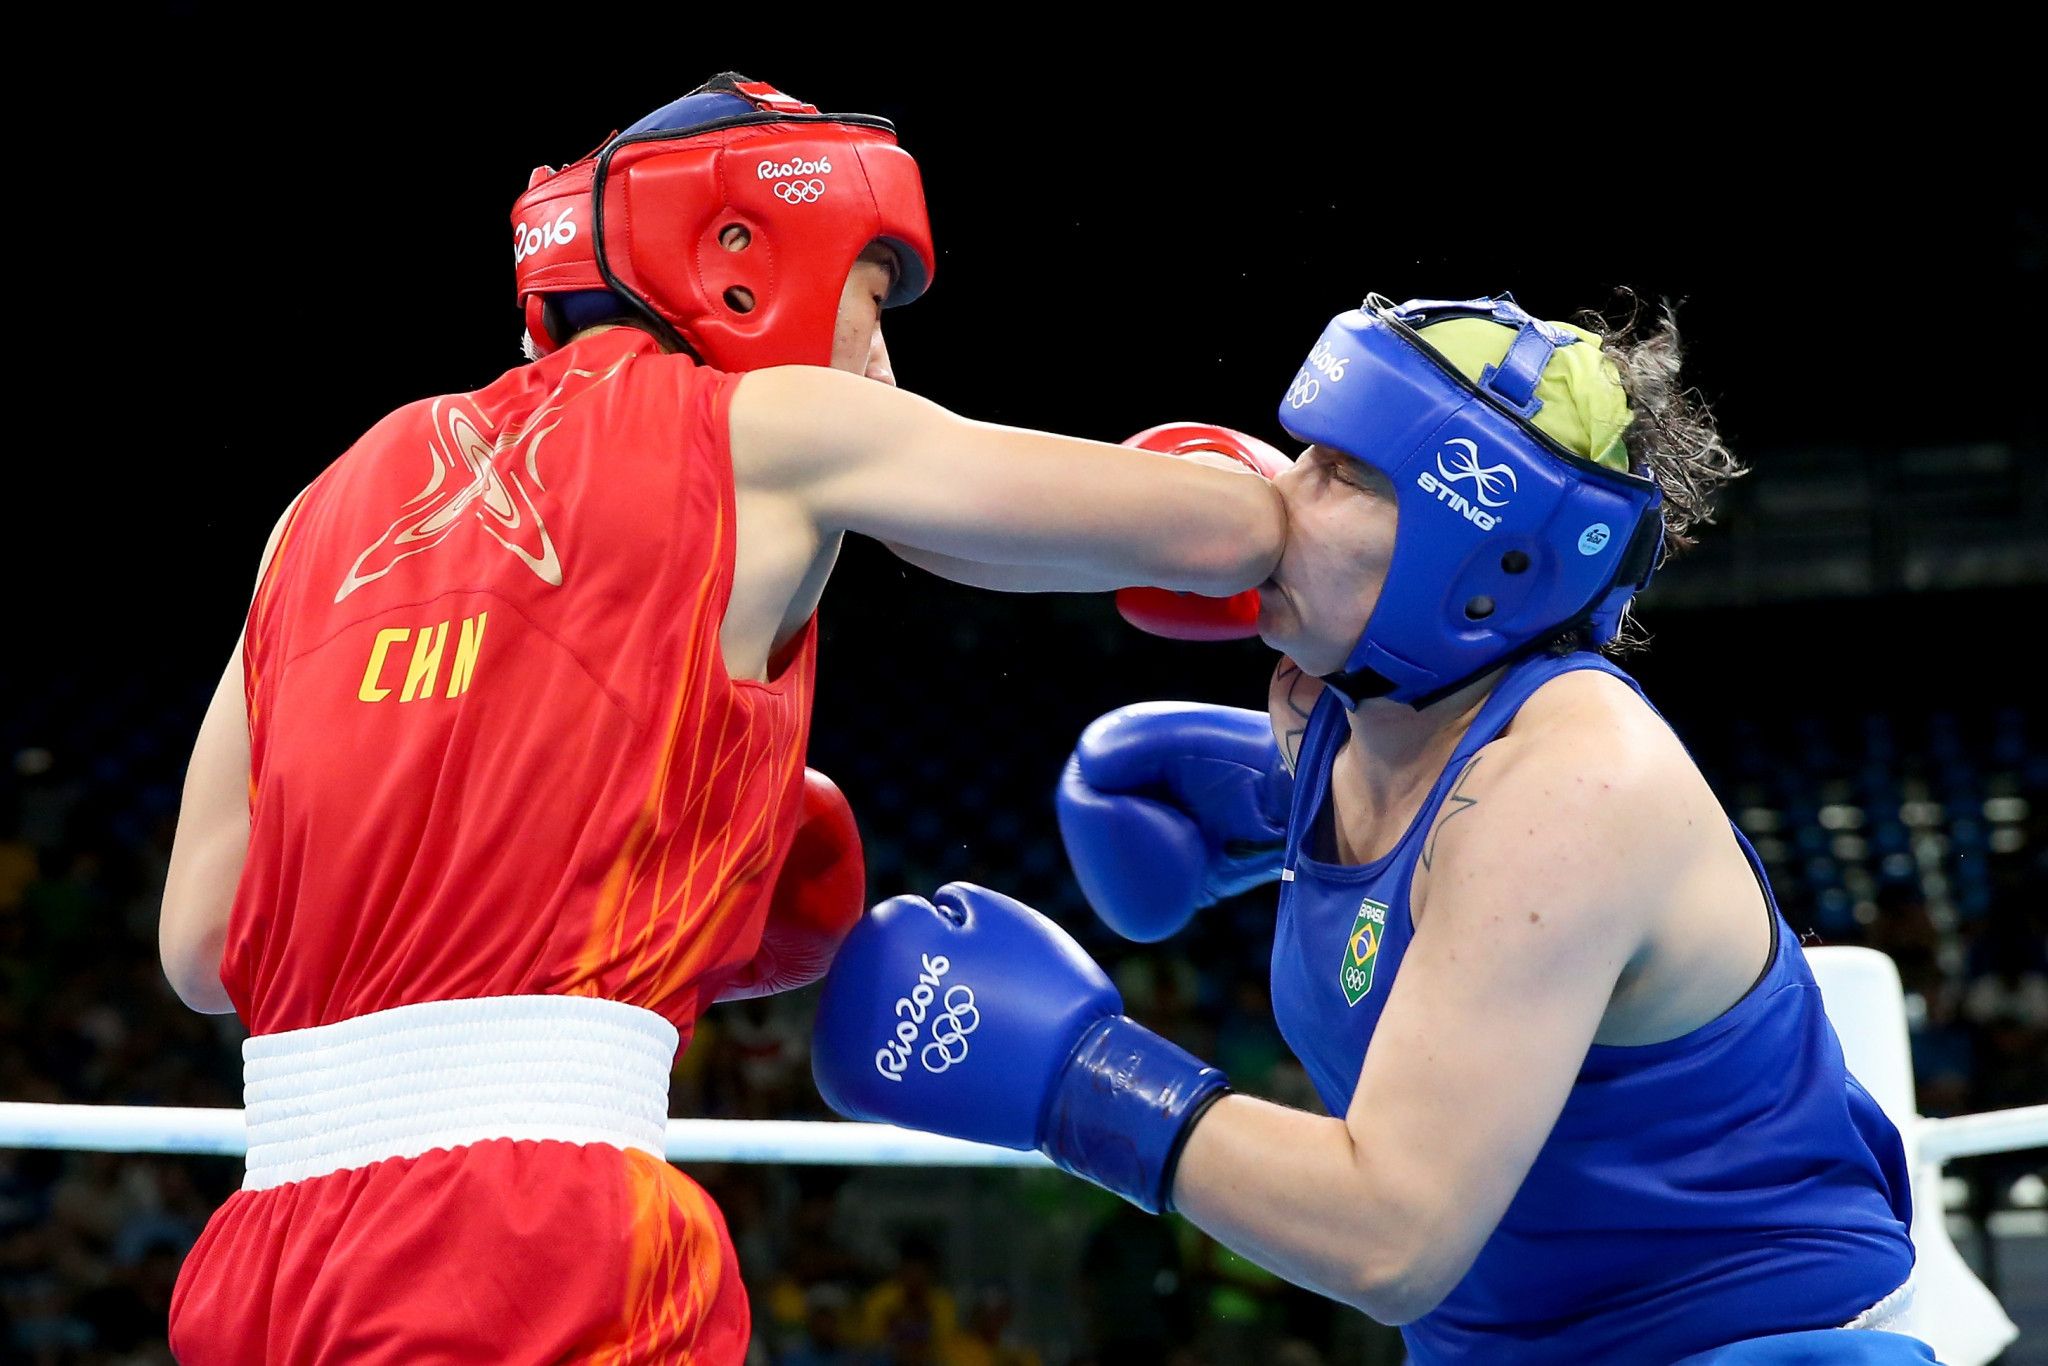 The boxing event at Tokyo 2020 will be held without the involvement of AIBA ©Getty Images